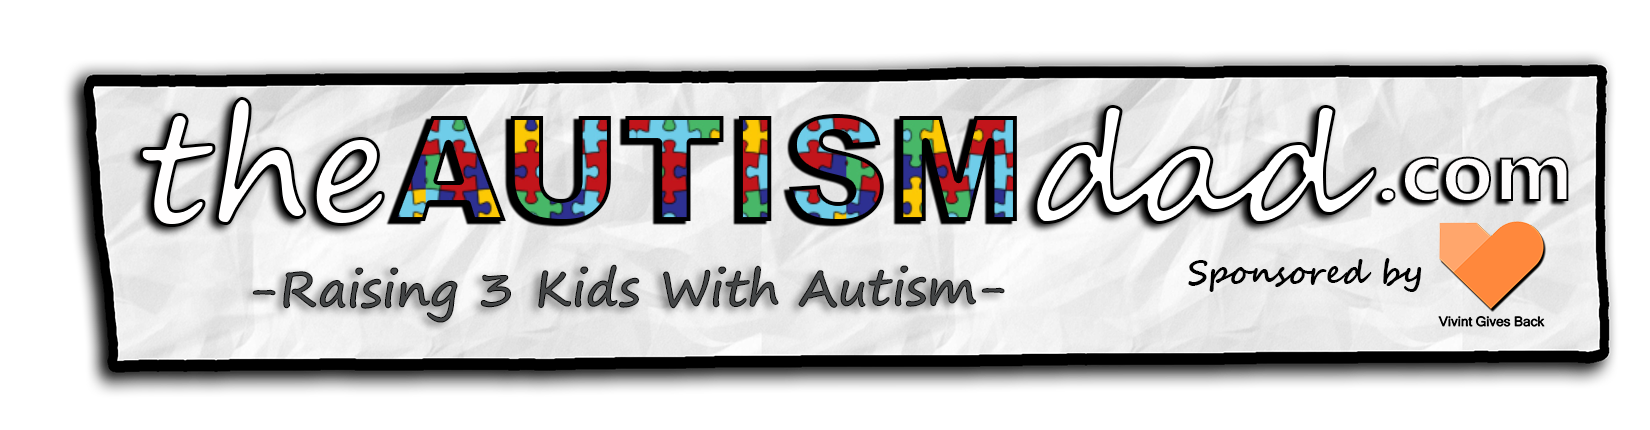 The Autism Dad Blog makes a difference in the lives of families in real life